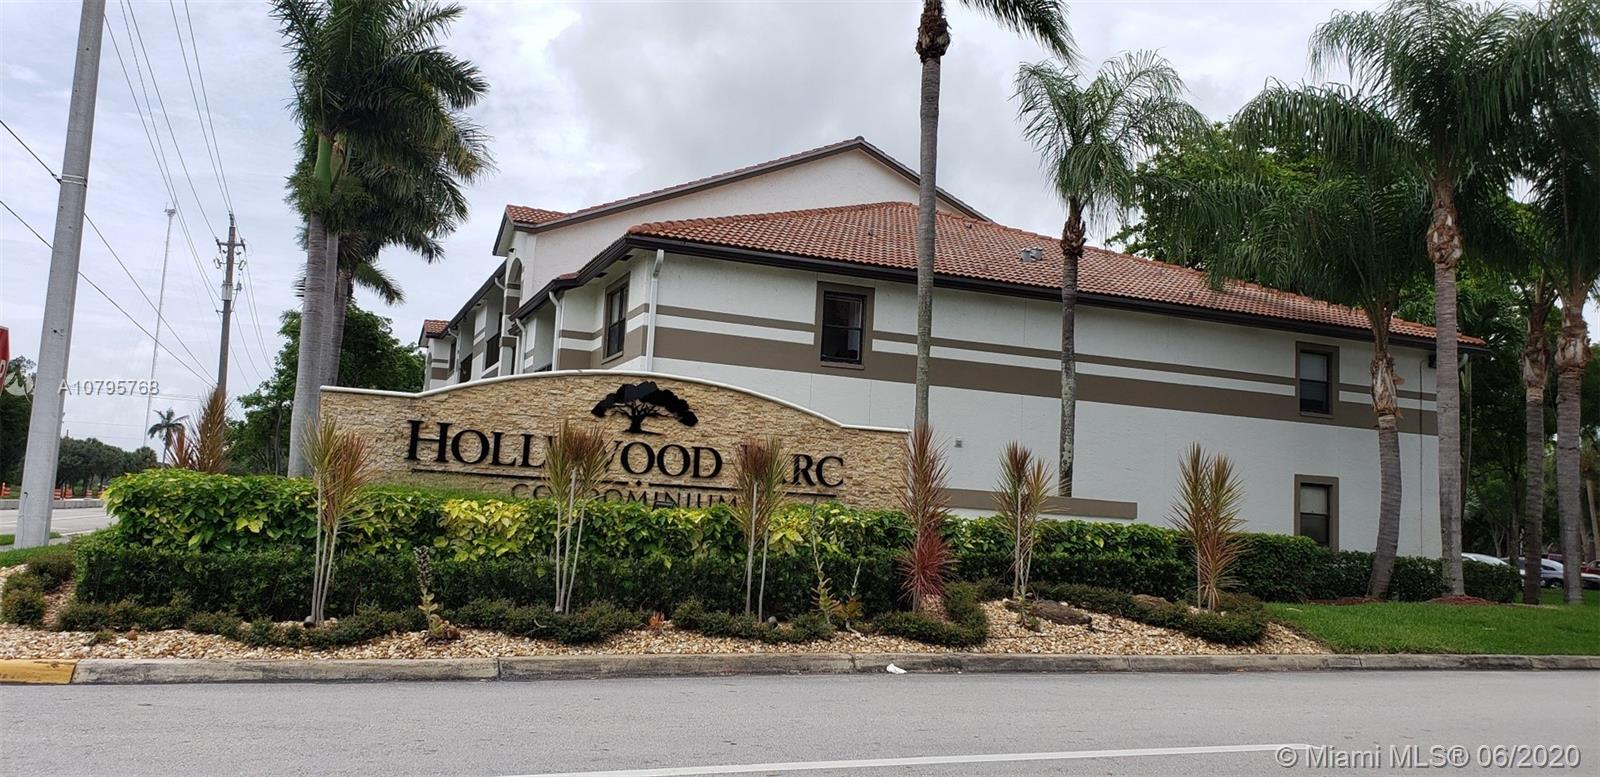 630 S Park Rd #18-3 For Sale A10795768, FL